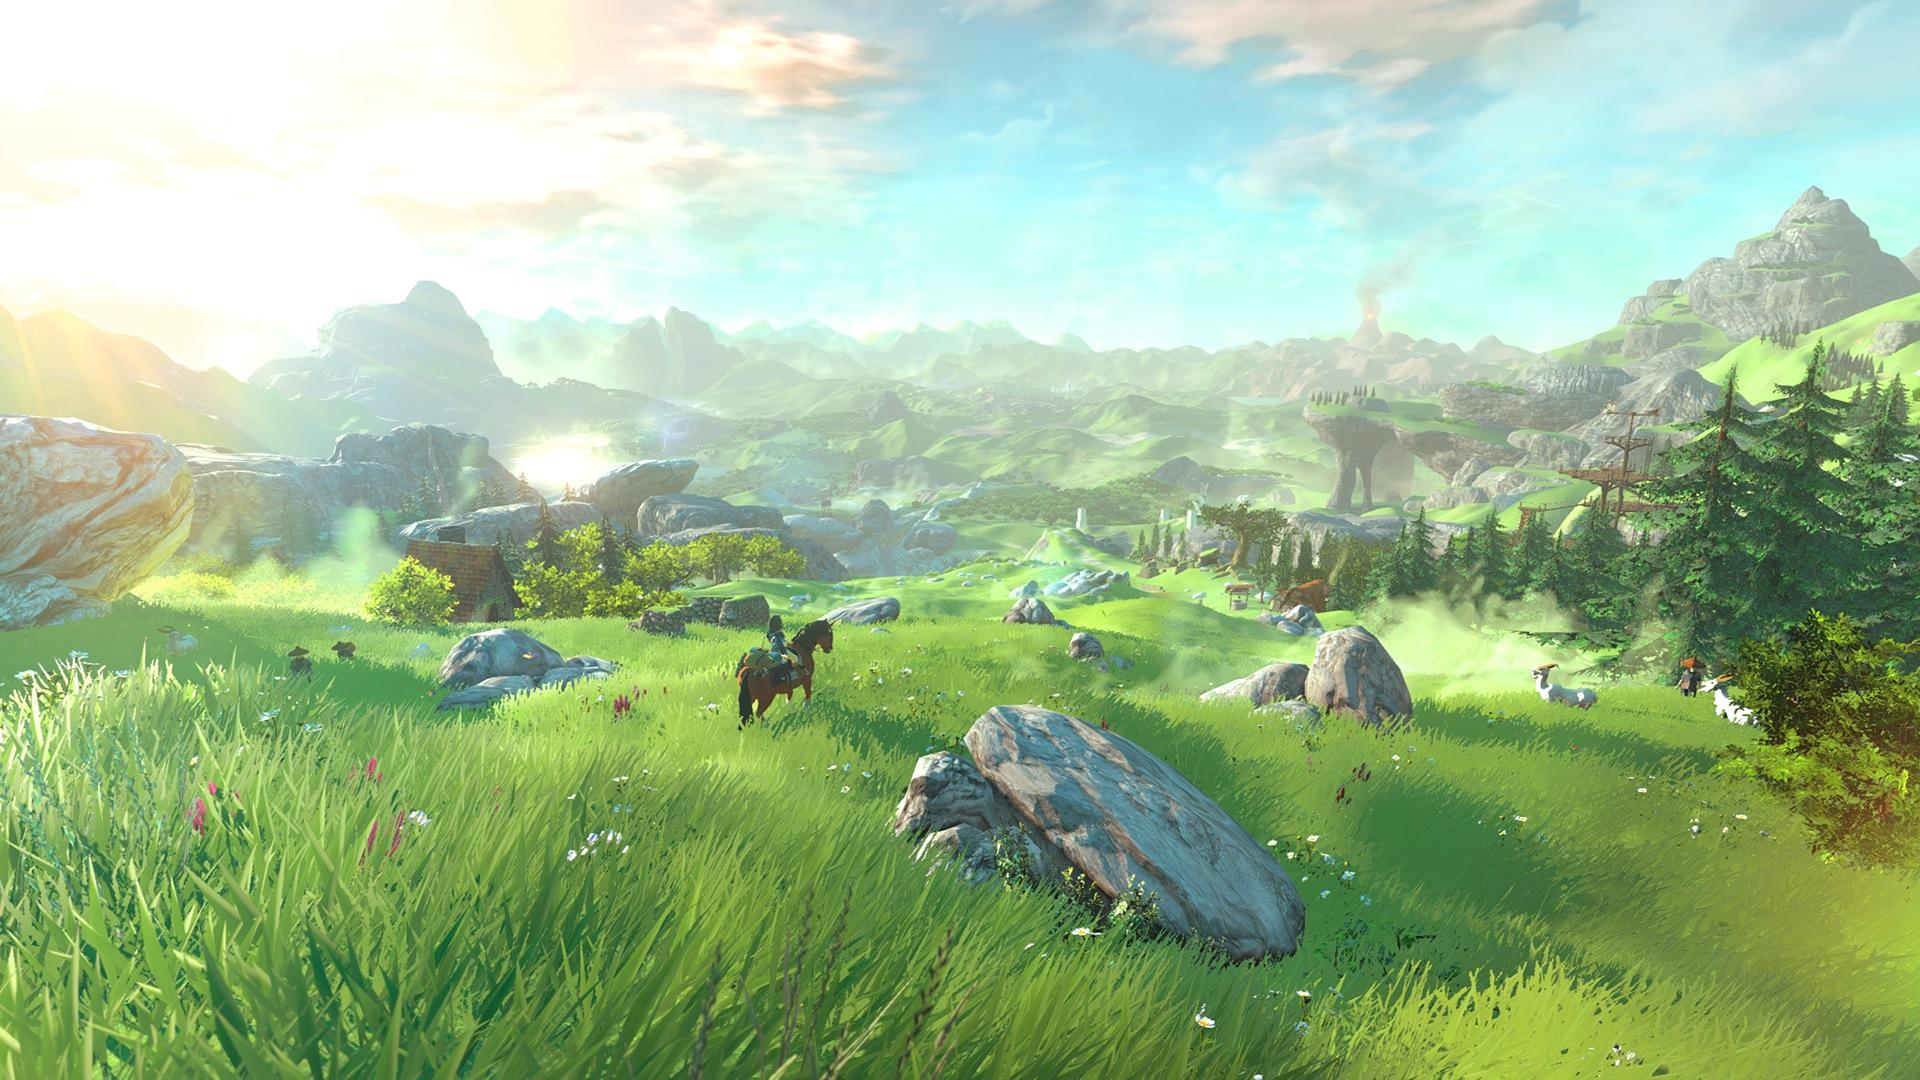 How The Legend of Zelda Wii U's Open World Could Spark A New Sense of Adventure